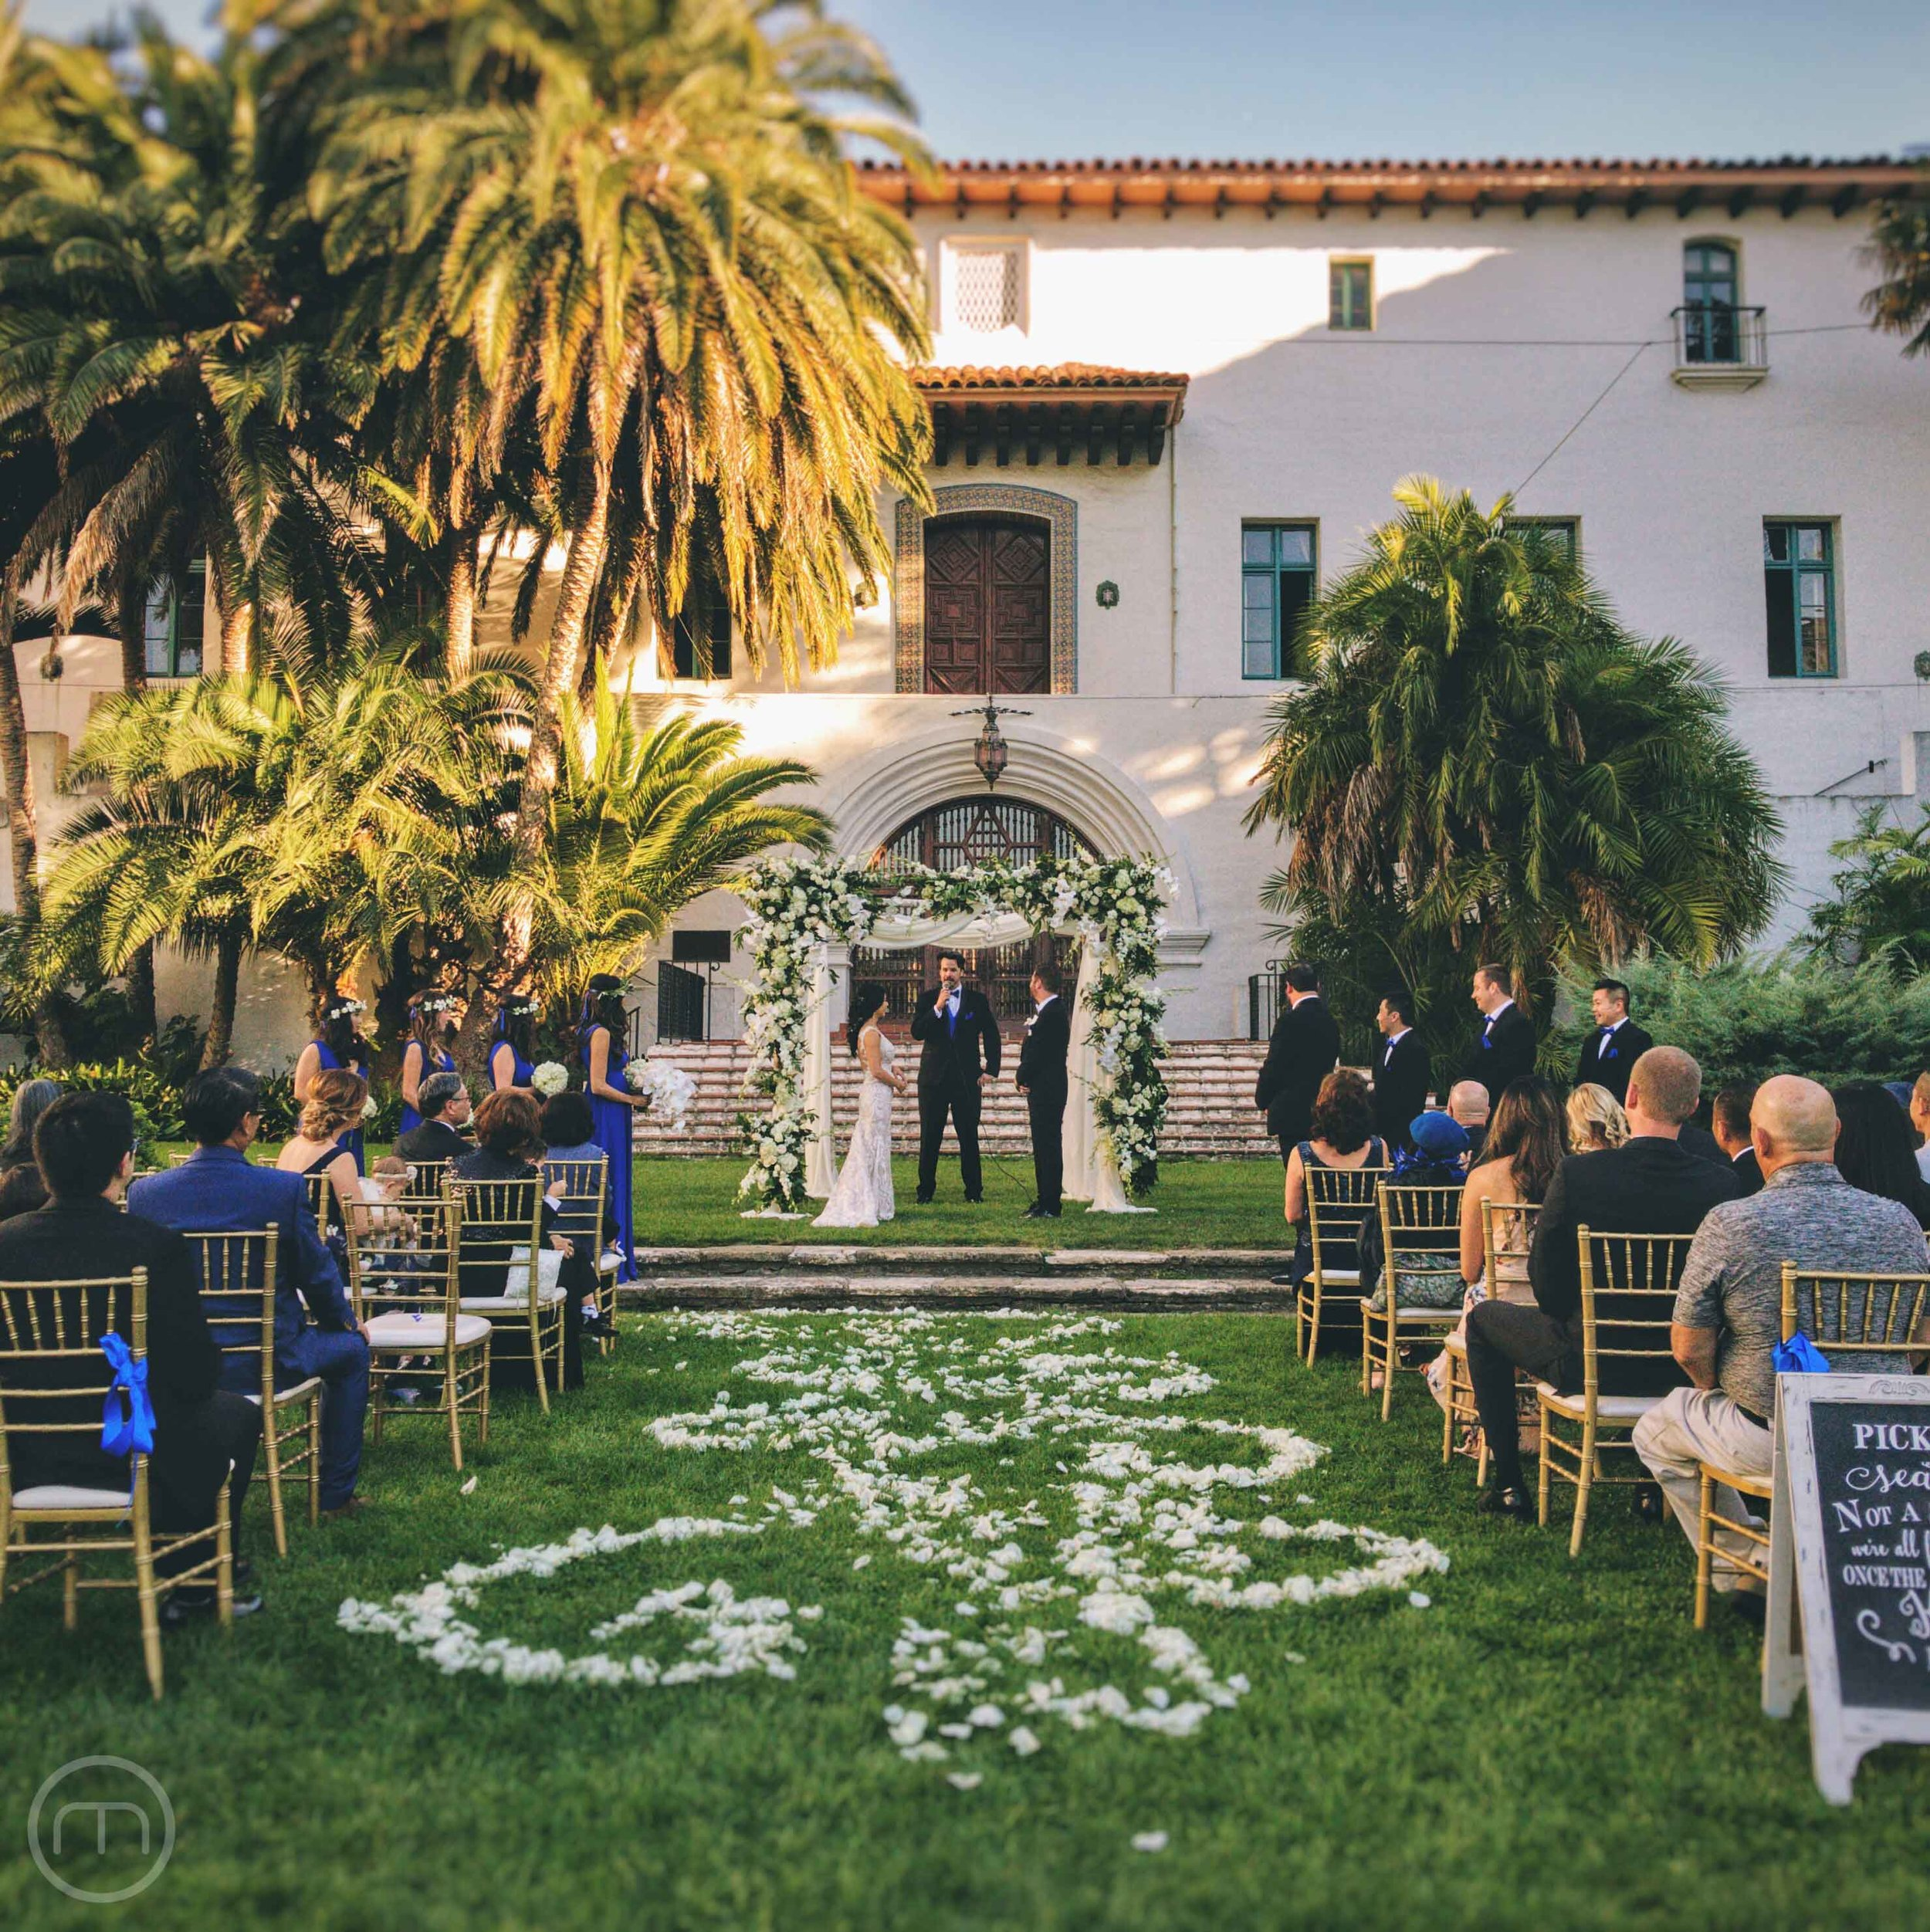 2017-11-29 Santa Barbara Wedding.jpg